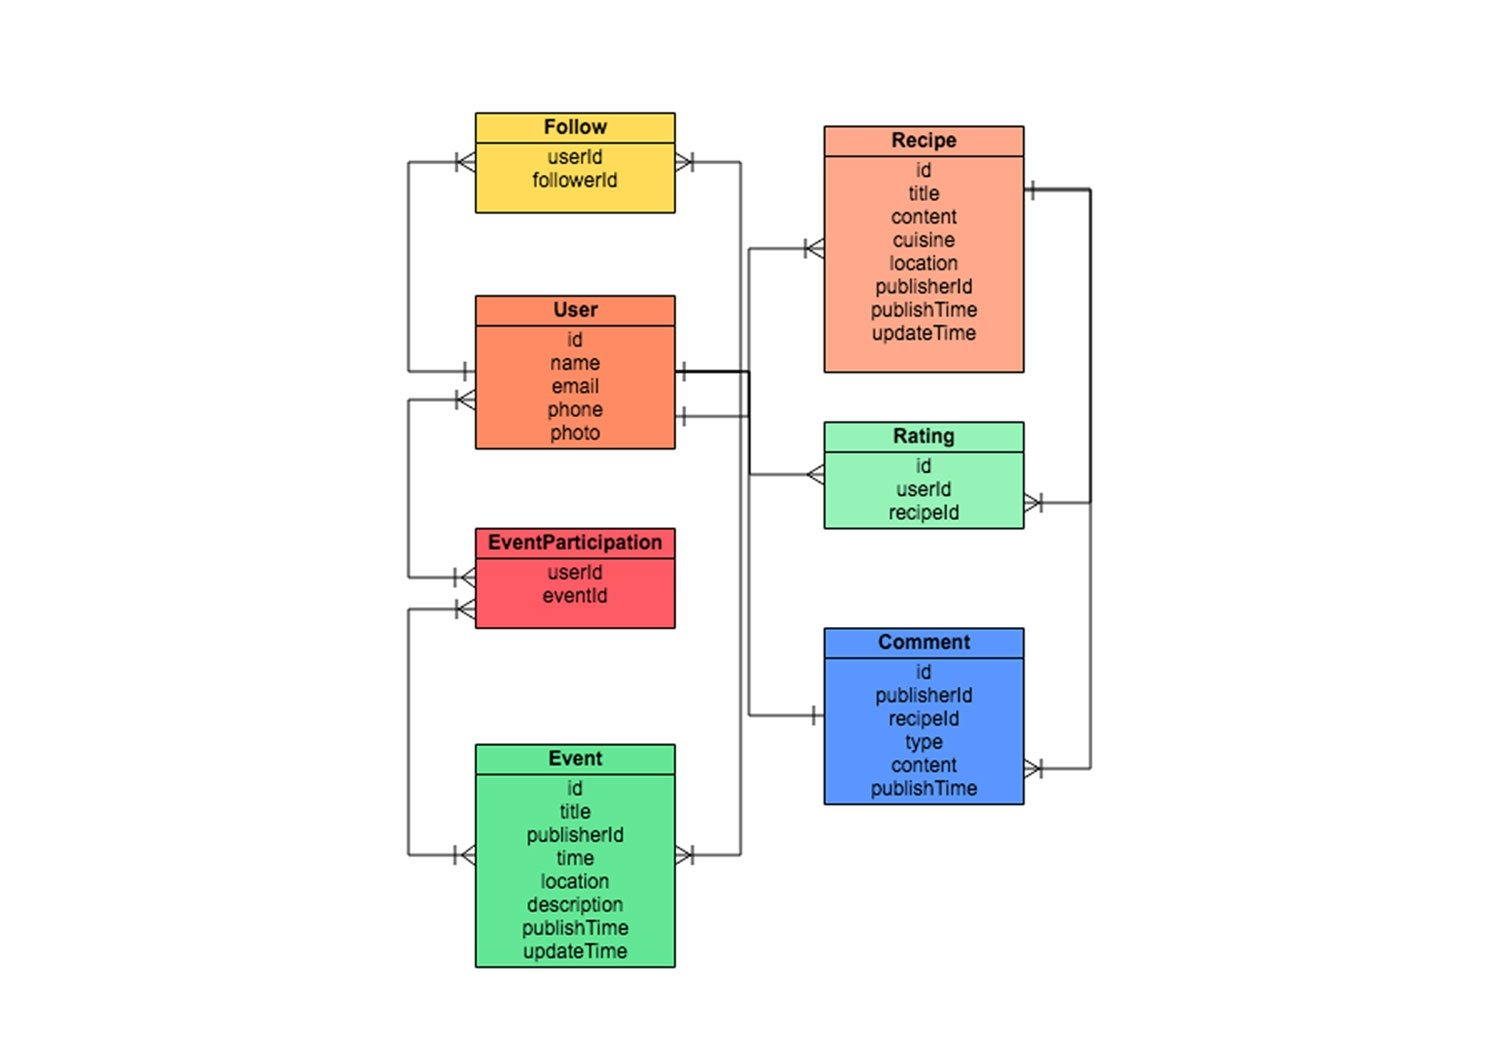 Er Diagram Tool   Draw Er Diagrams Online   Gliffy with ...